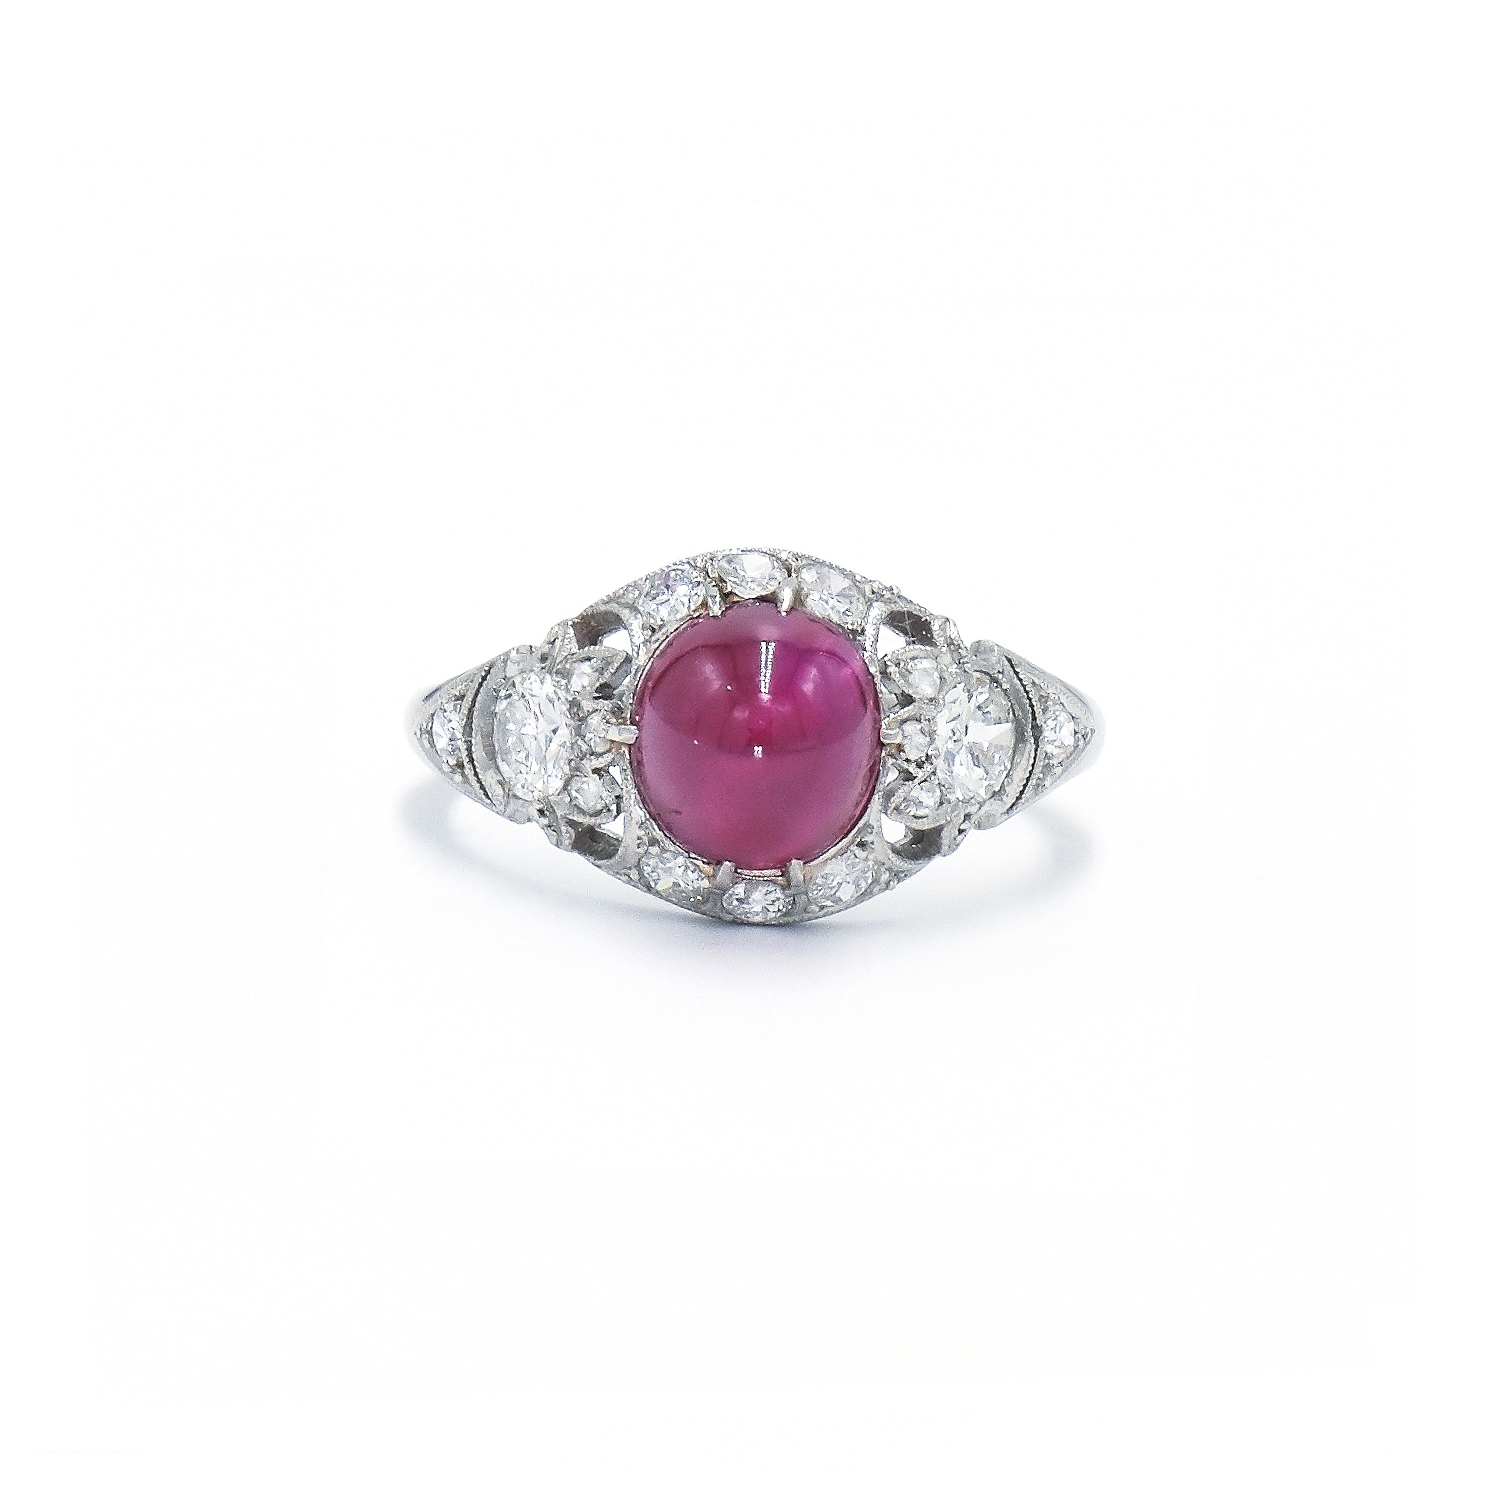 Art Deco Cabochon Ruby and Diamond Ring Style F-25160-FL-0-0